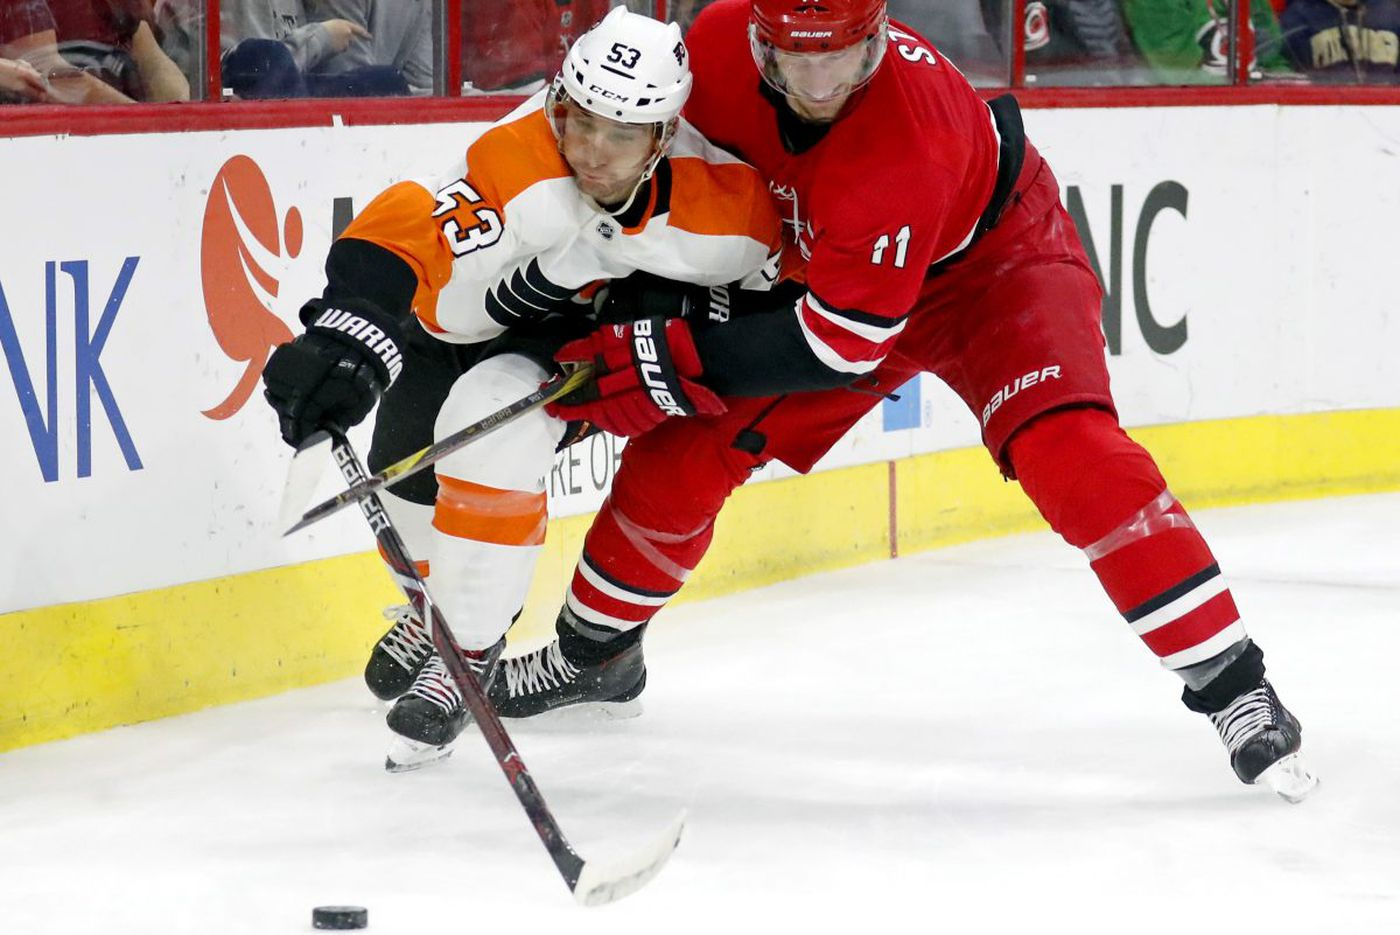 Flyers-Hurricanes preview: Nitty-gritty time